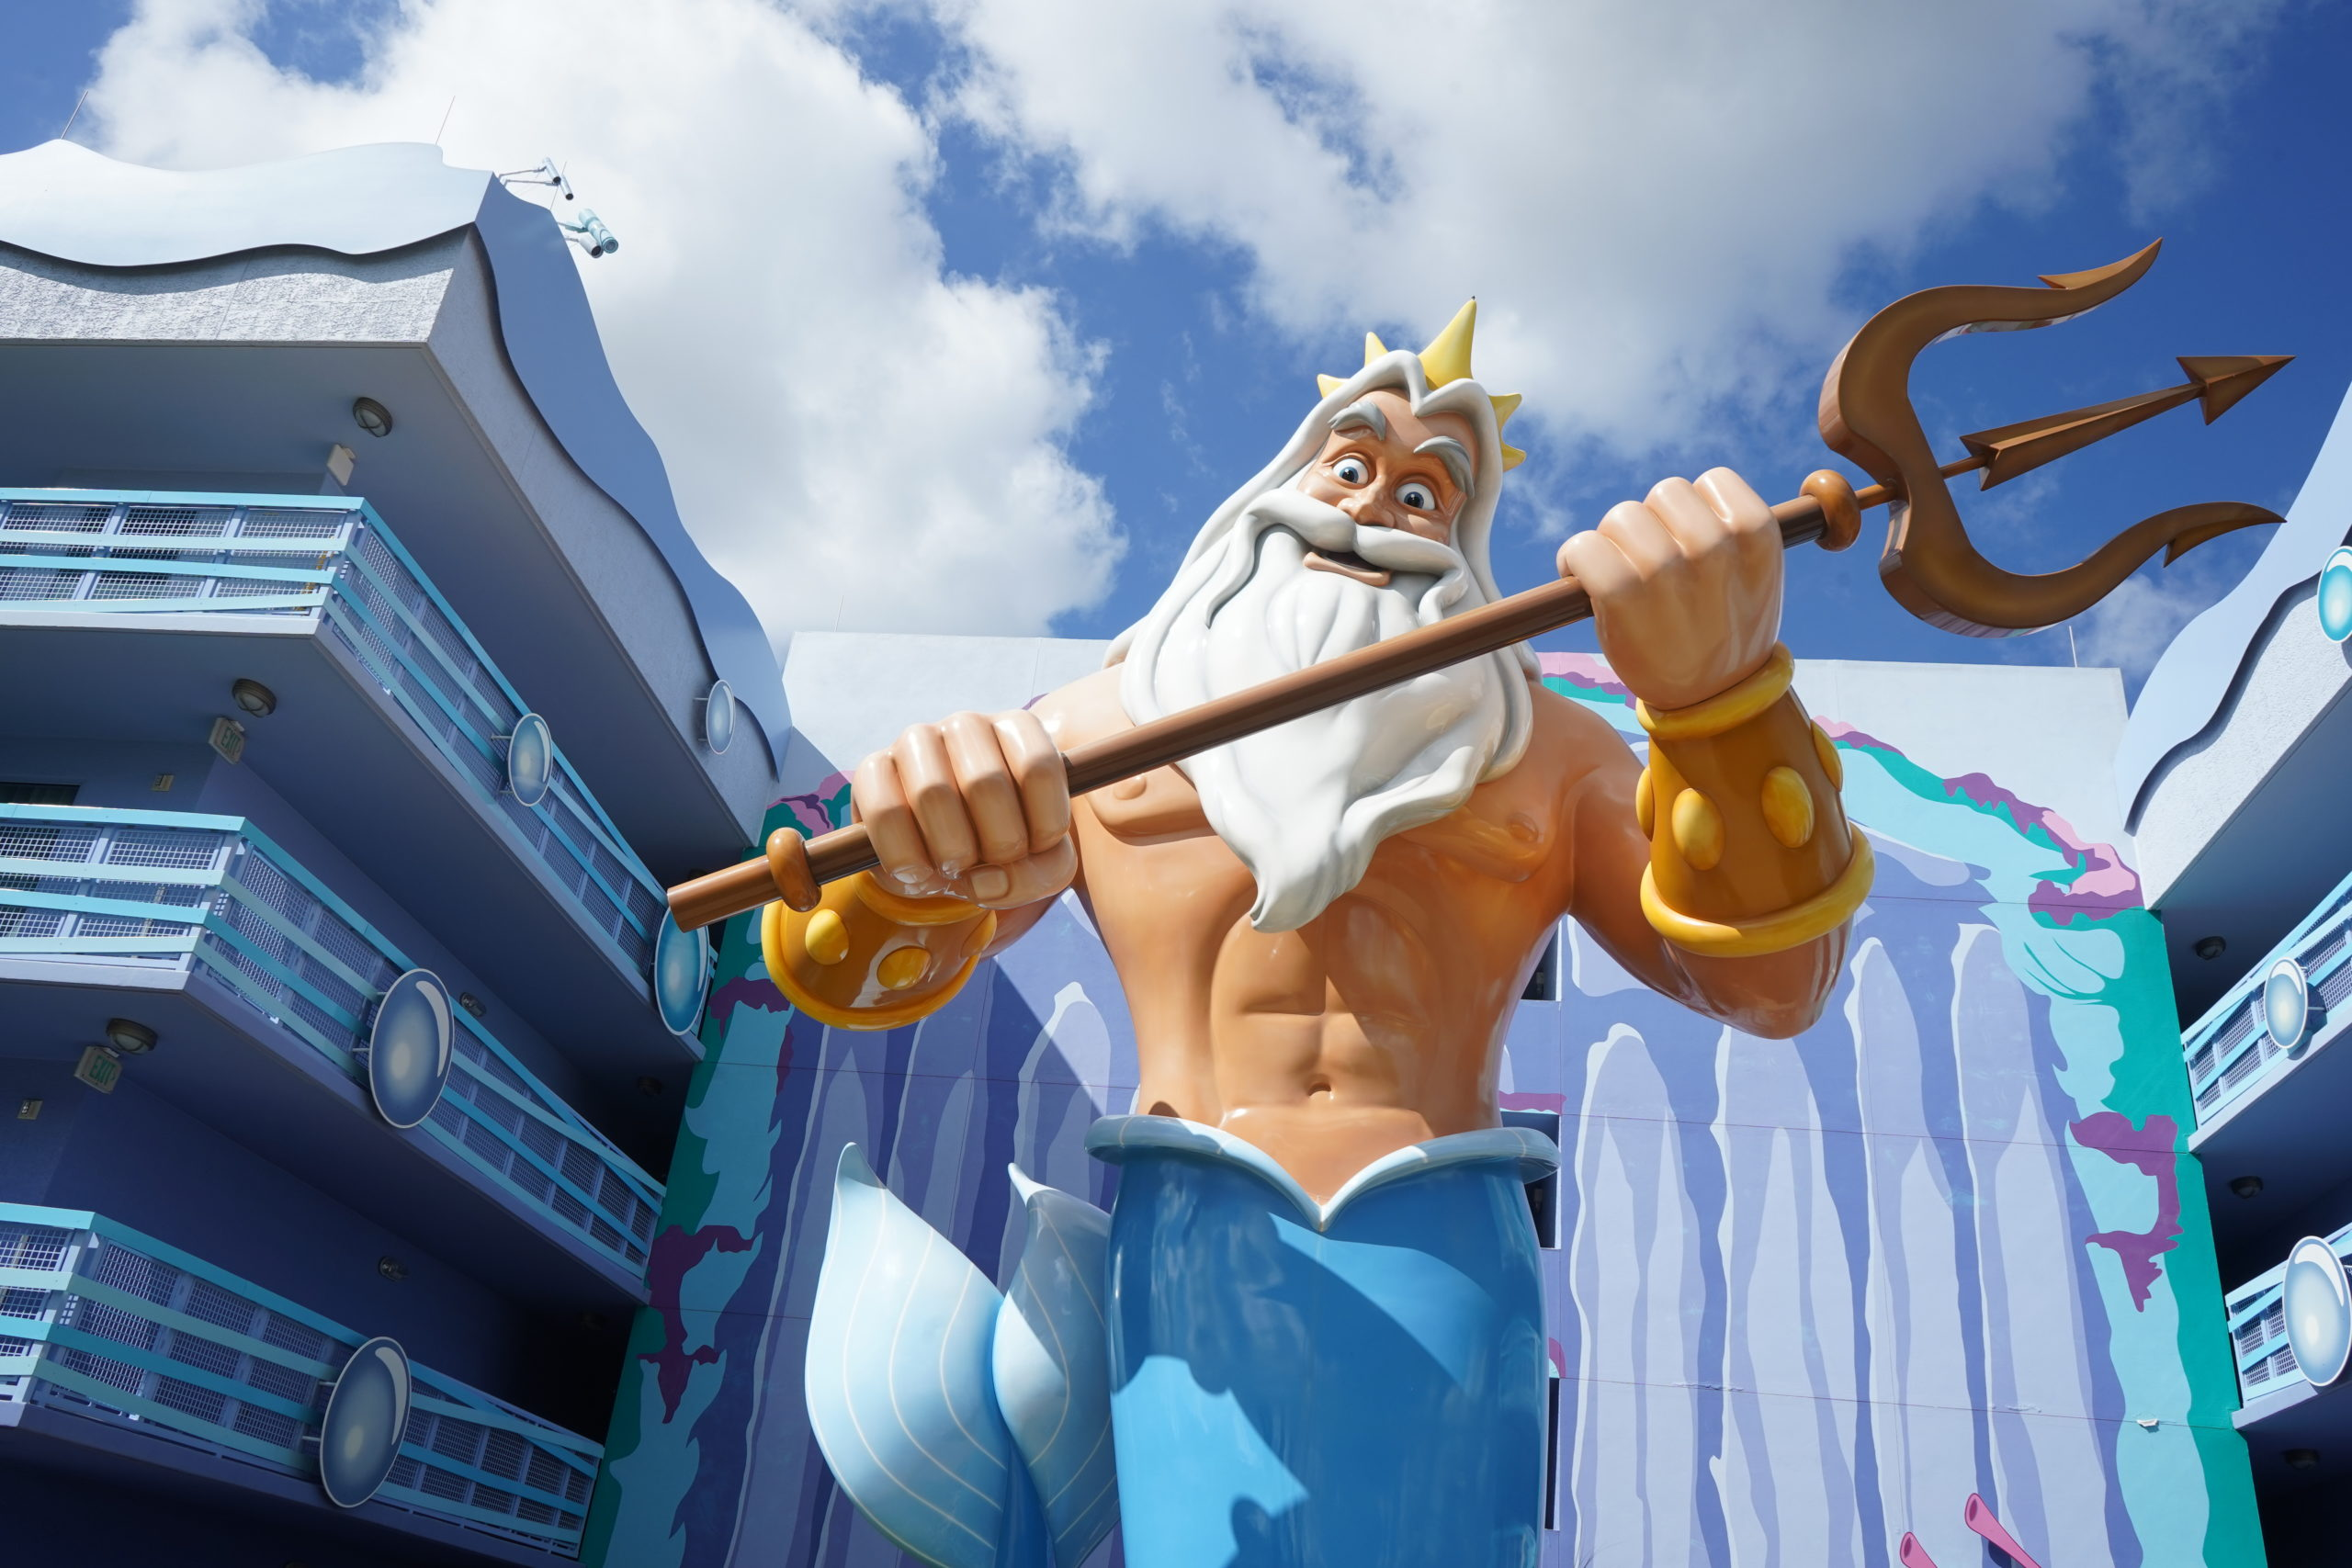 Clear photo of King Triton from Little Mermaid statue at Art of Animation